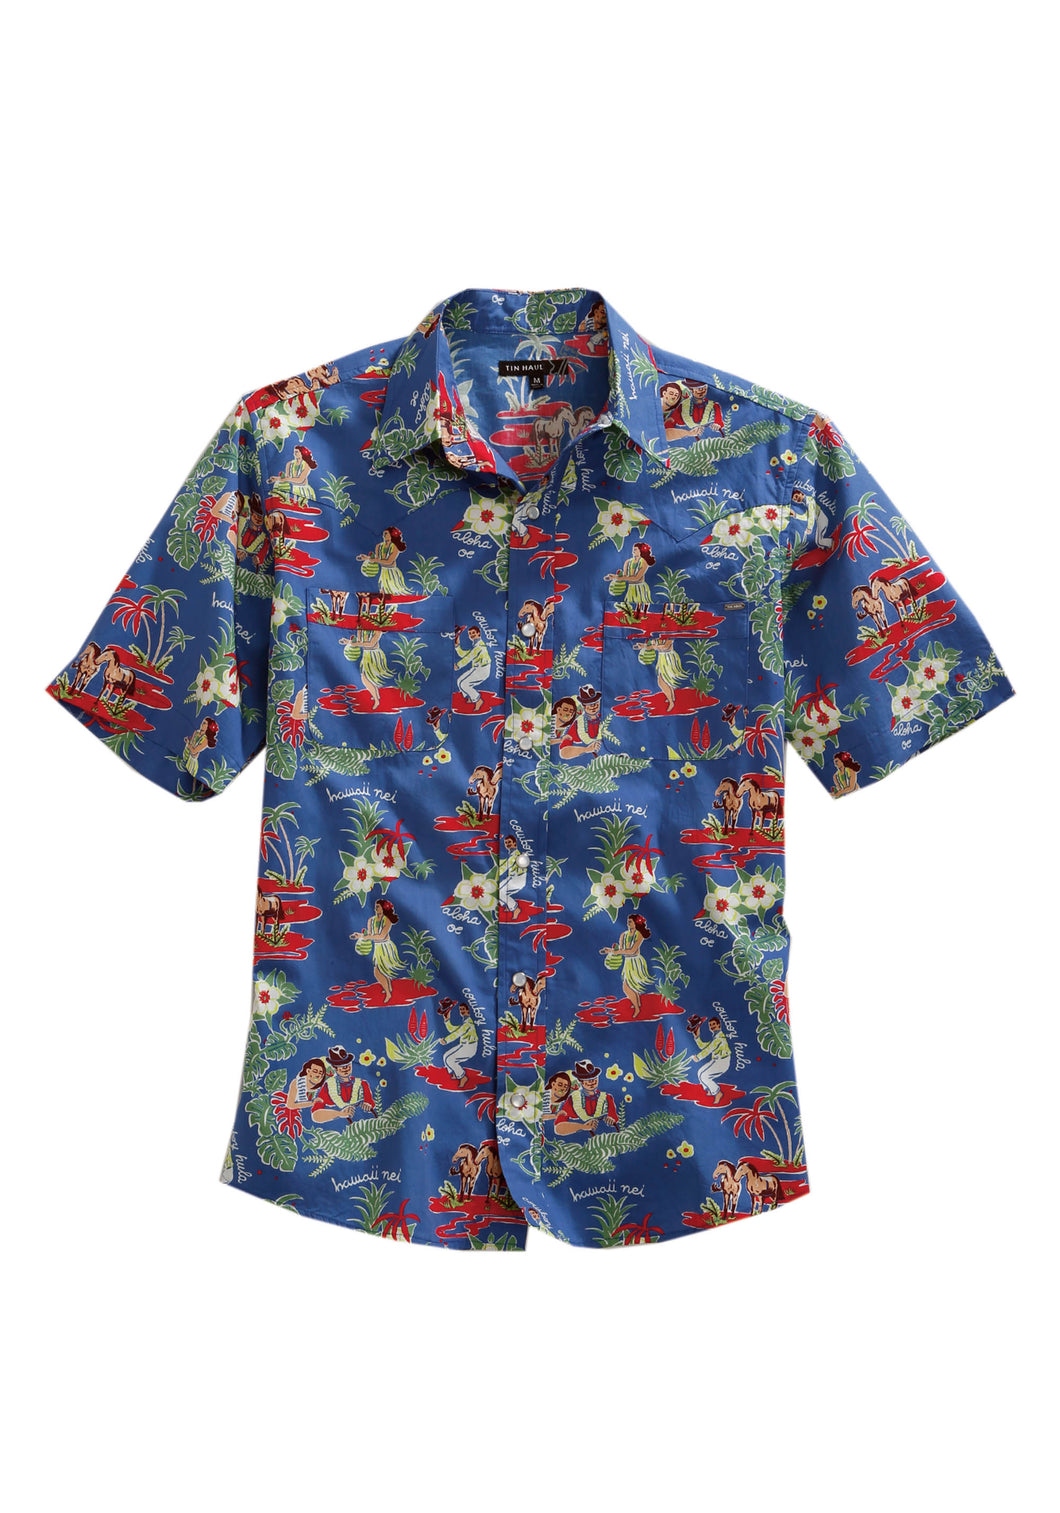 Tin Haul Collection Tinhaul Mens Short Sleeve 2138 Cowboy Hula Style 2